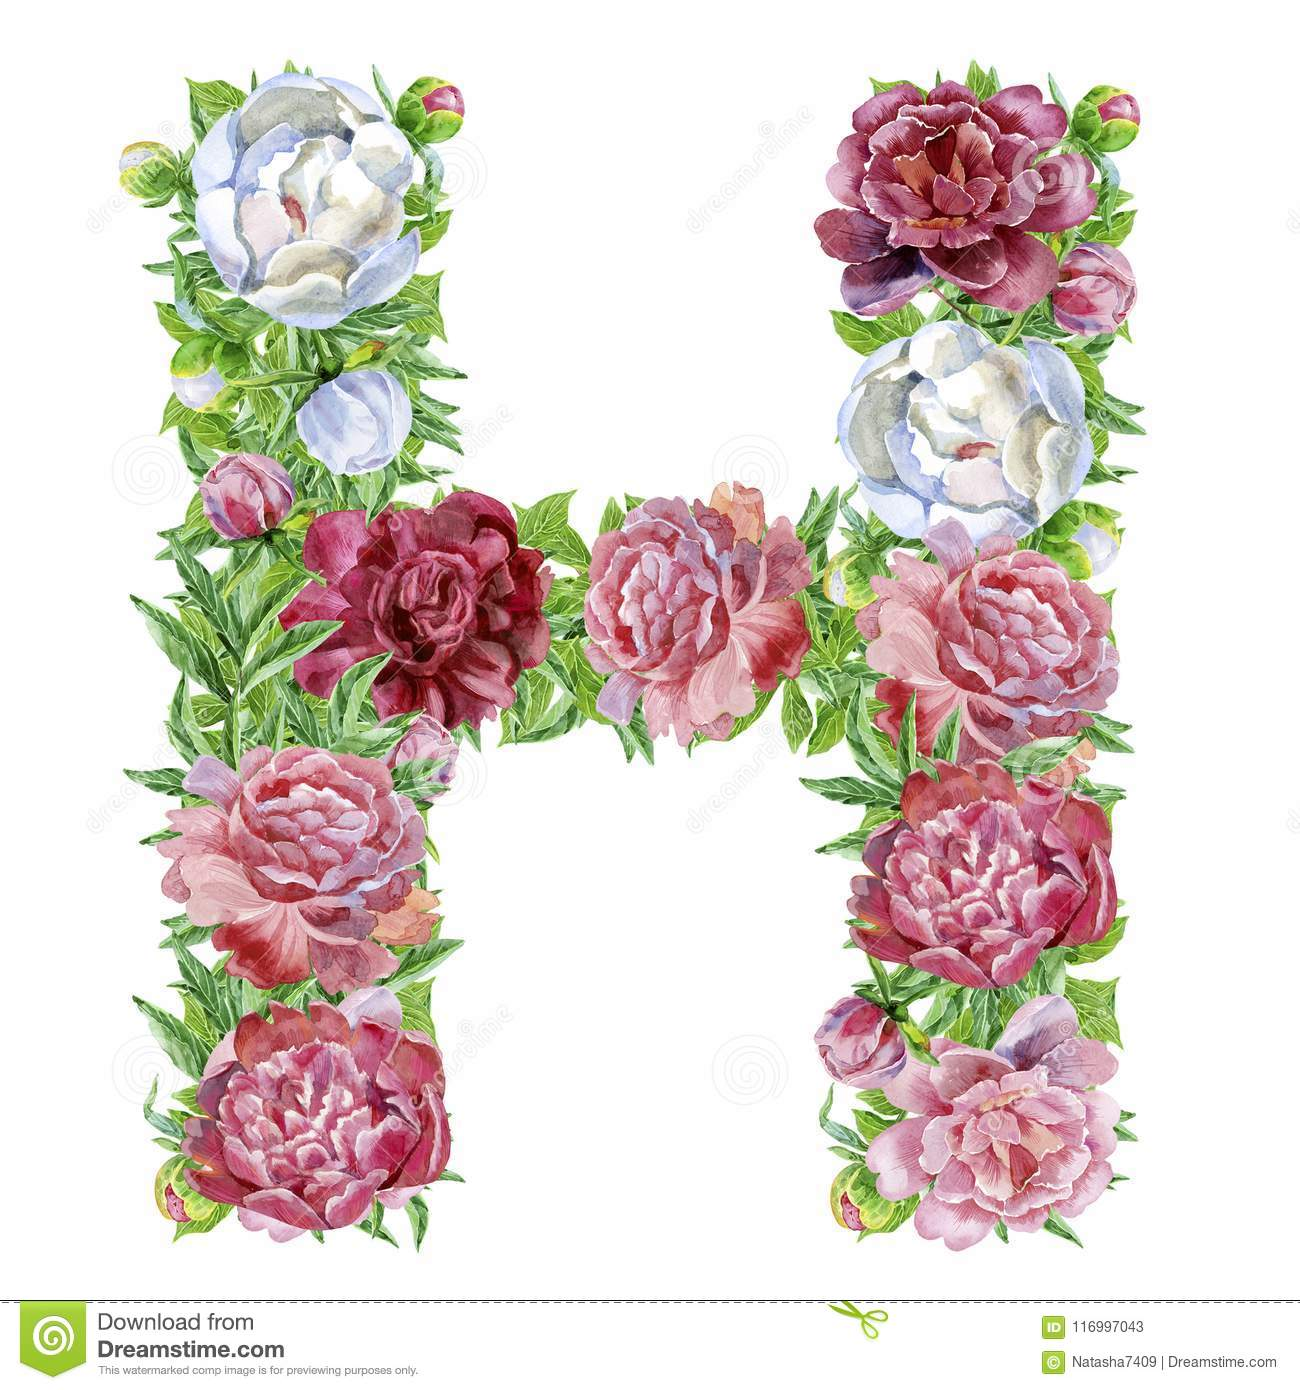 Letter H of watercolor flowers